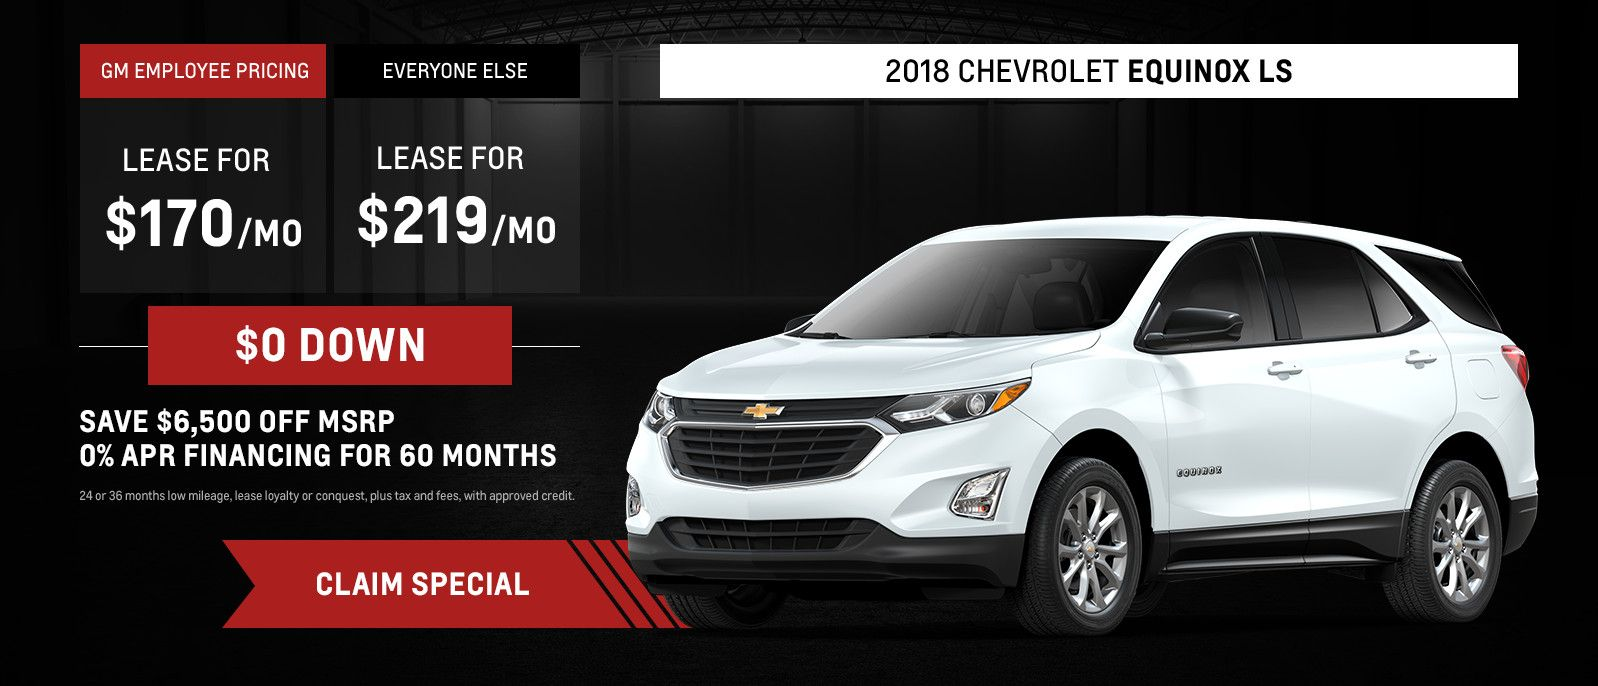 0 Down Lease Deals 2017 Lamoureph Blog Lease Deals Chevrolet